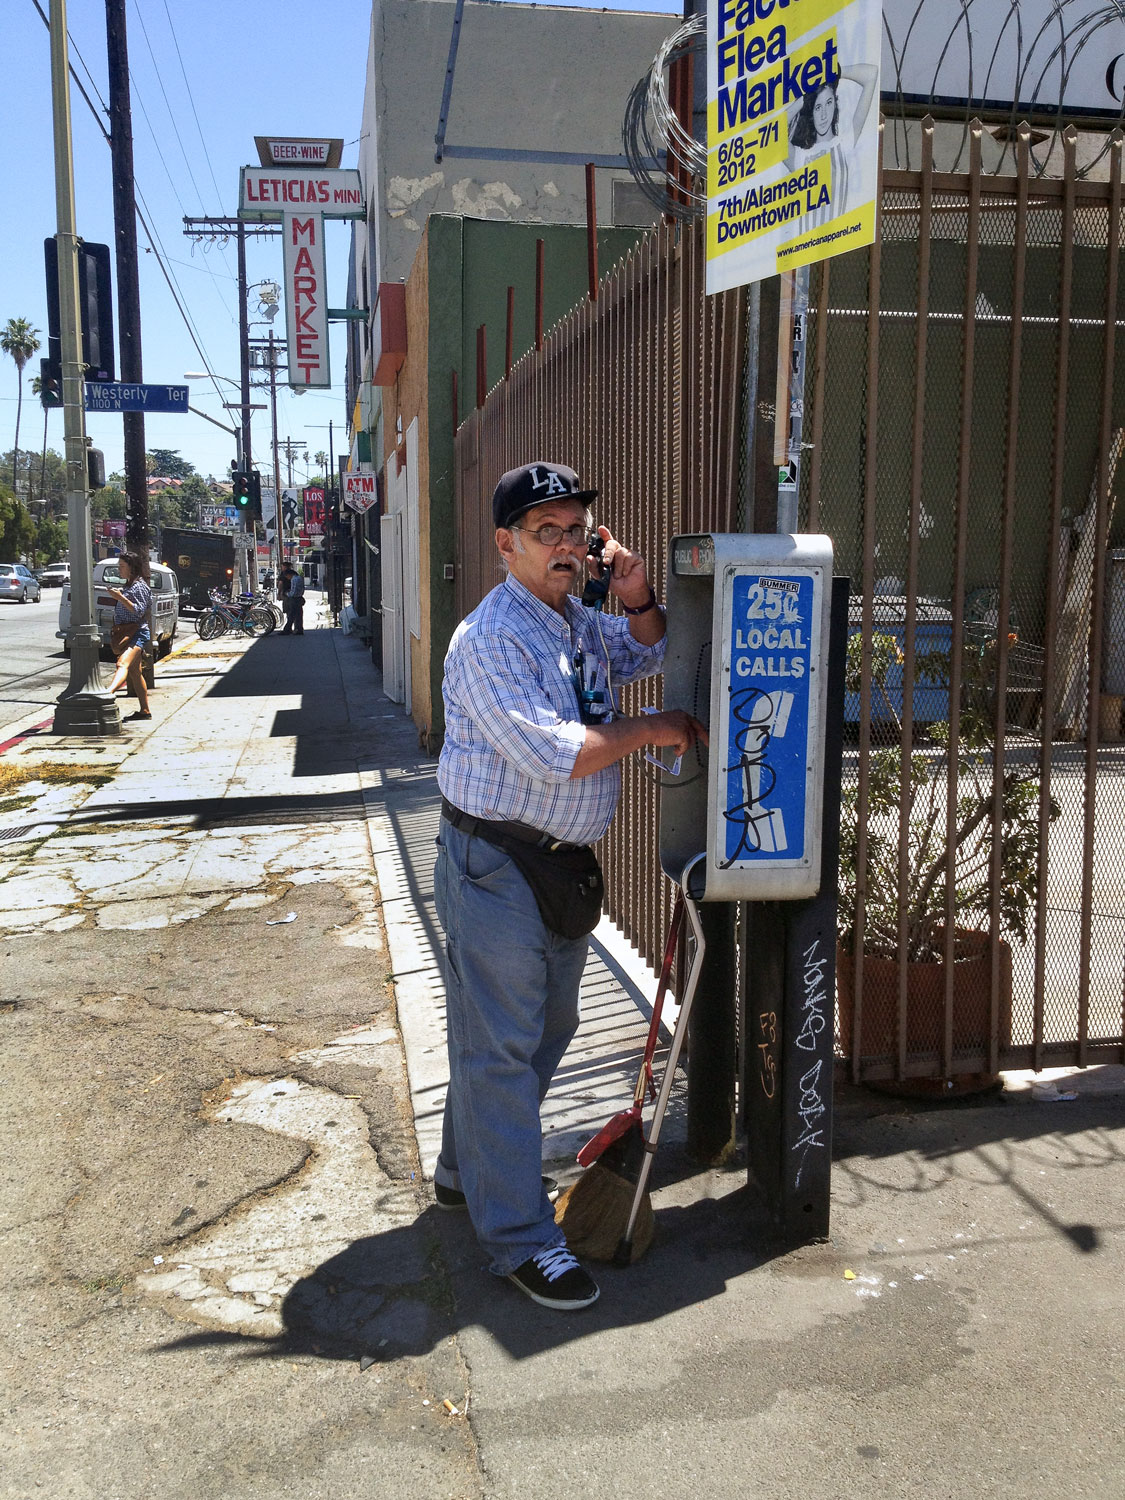 On the Payphone